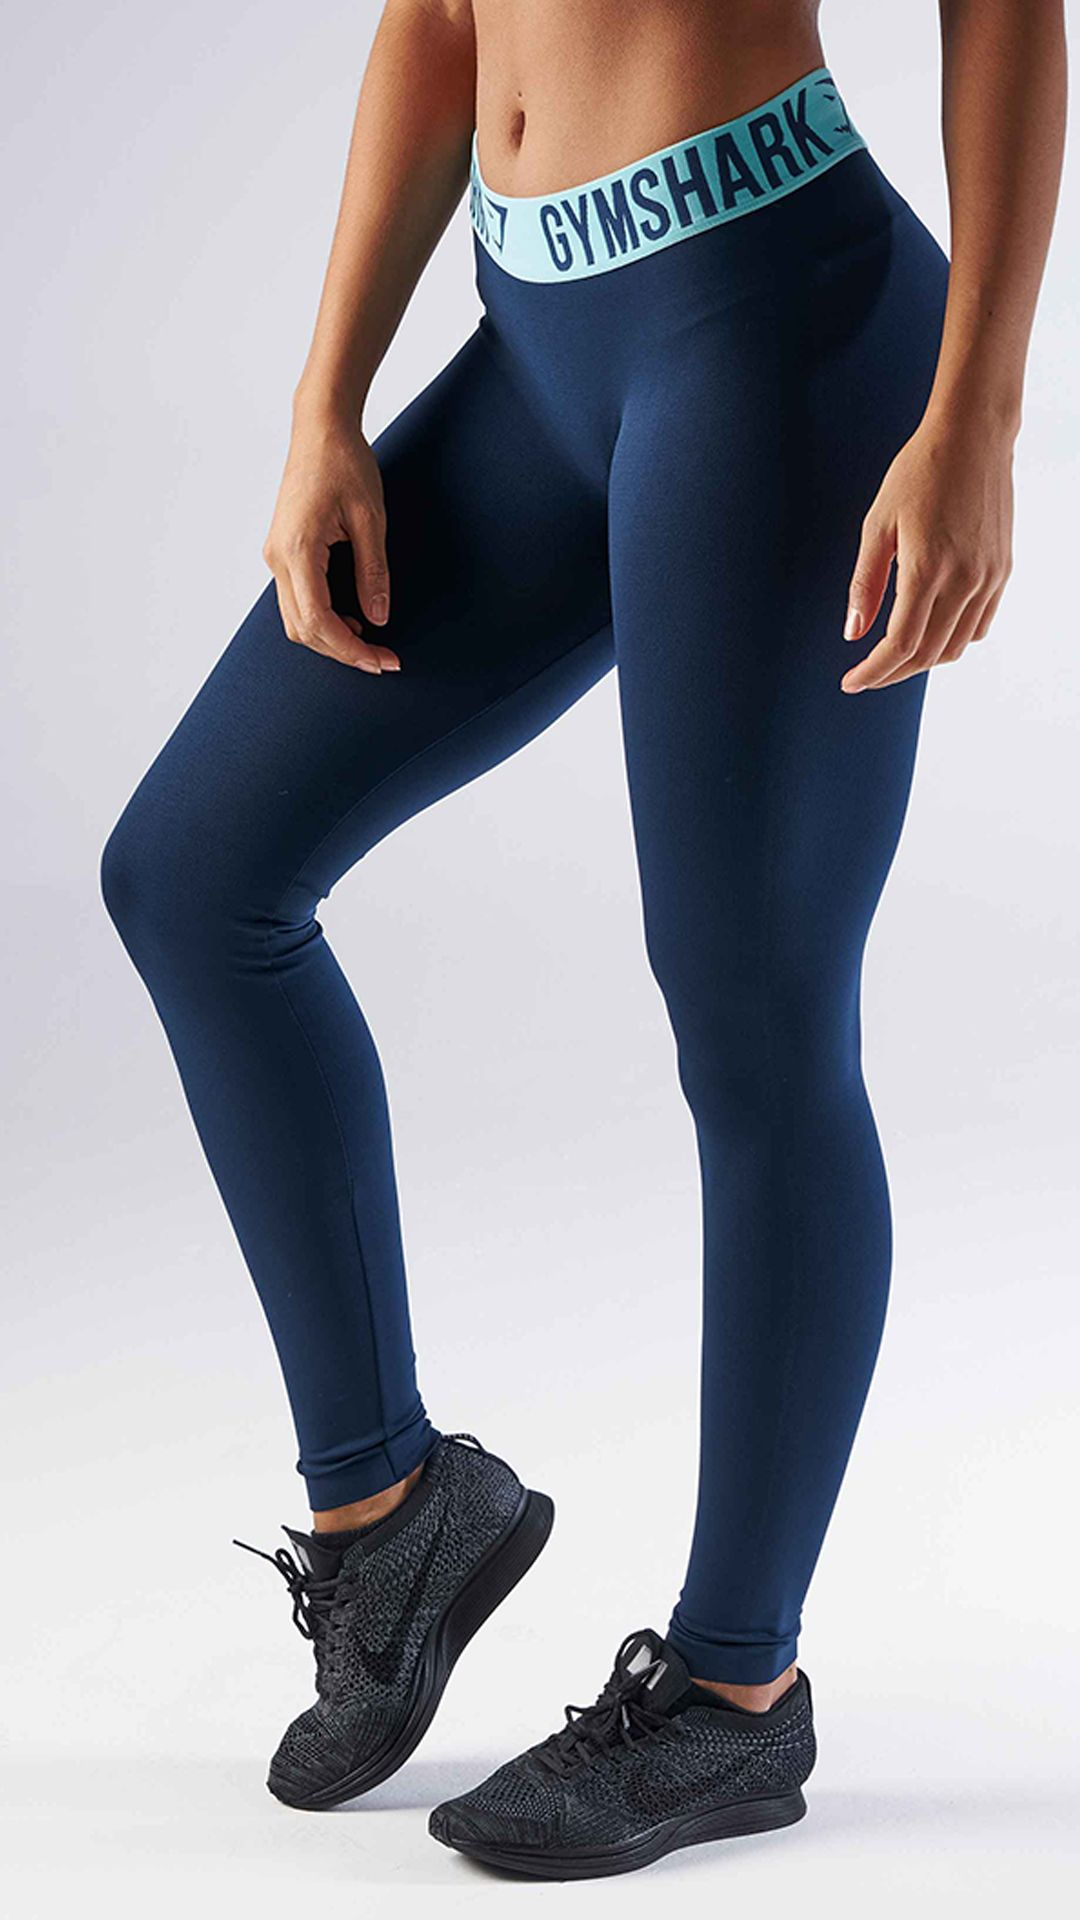 ab07fd2dad917 The Gymshark Fit Leggings are your new favourite leggings. A simple design  available in stylish seasonal colours, made with soft fabrics for a  stretchy, ...